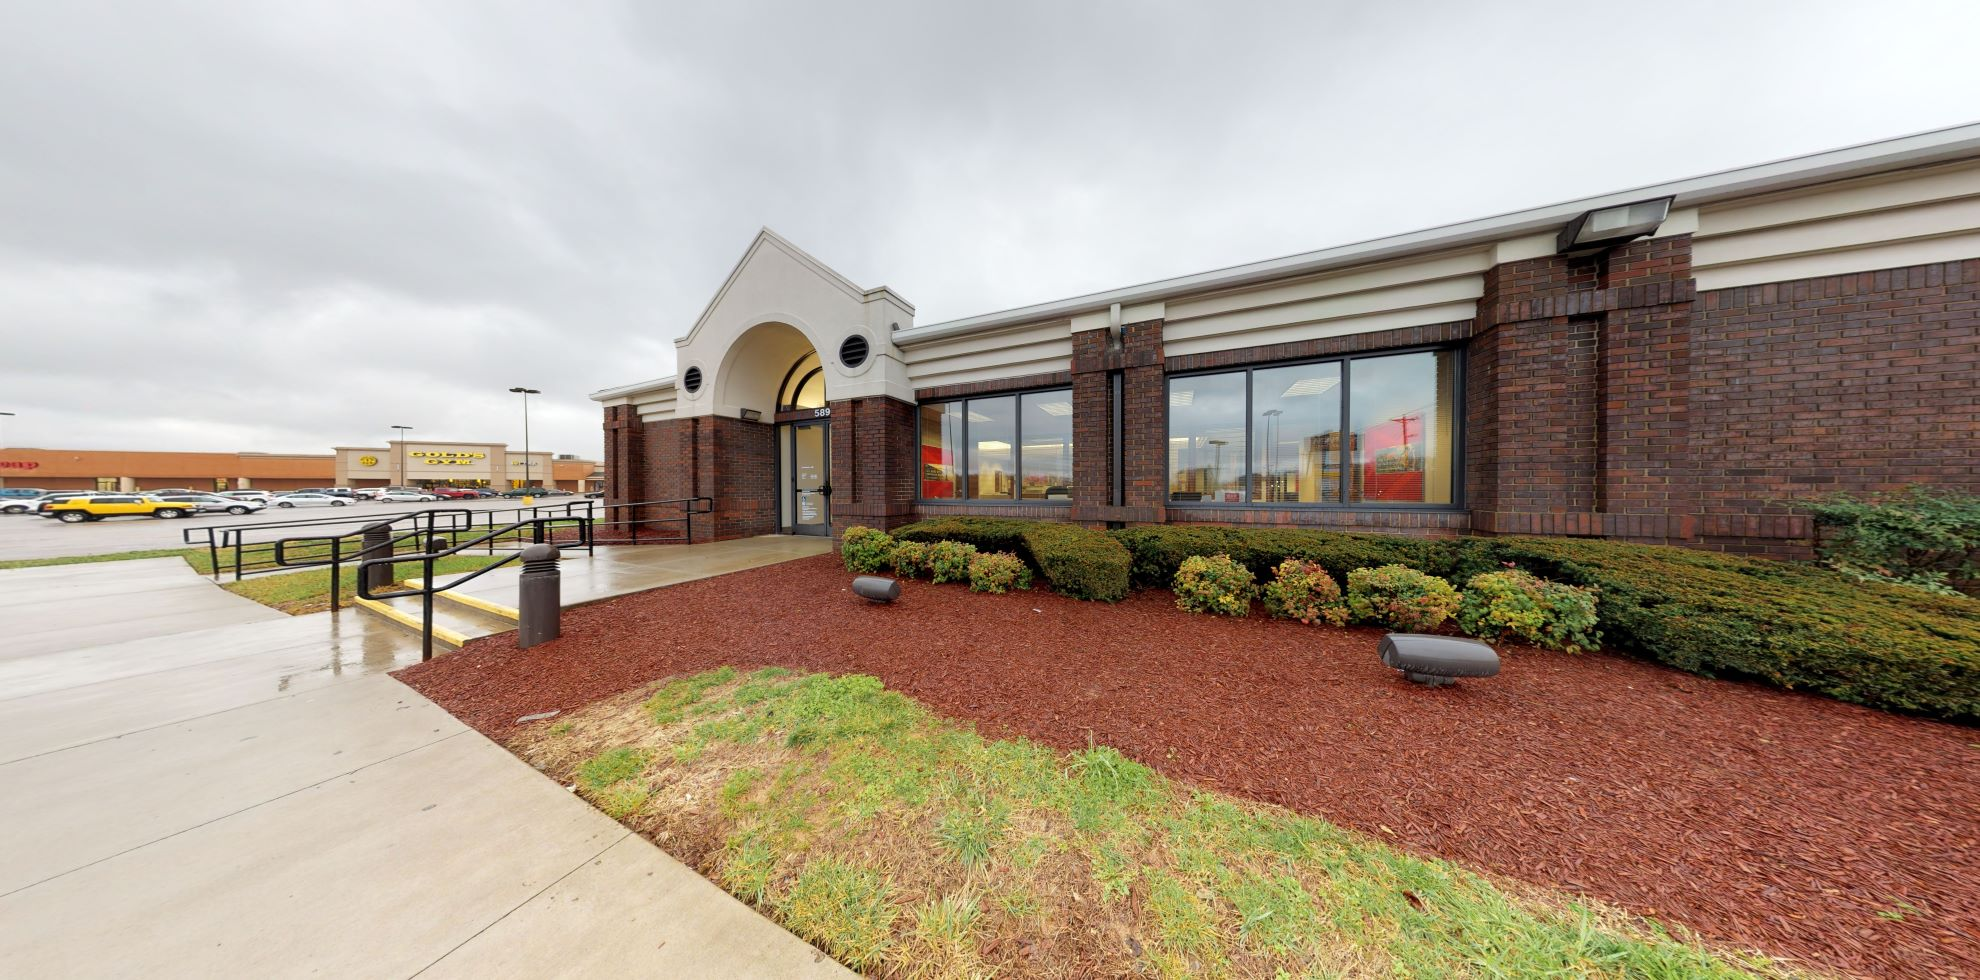 Bank of America financial center with drive-thru ATM   589 S Lowry St, Smyrna, TN 37167